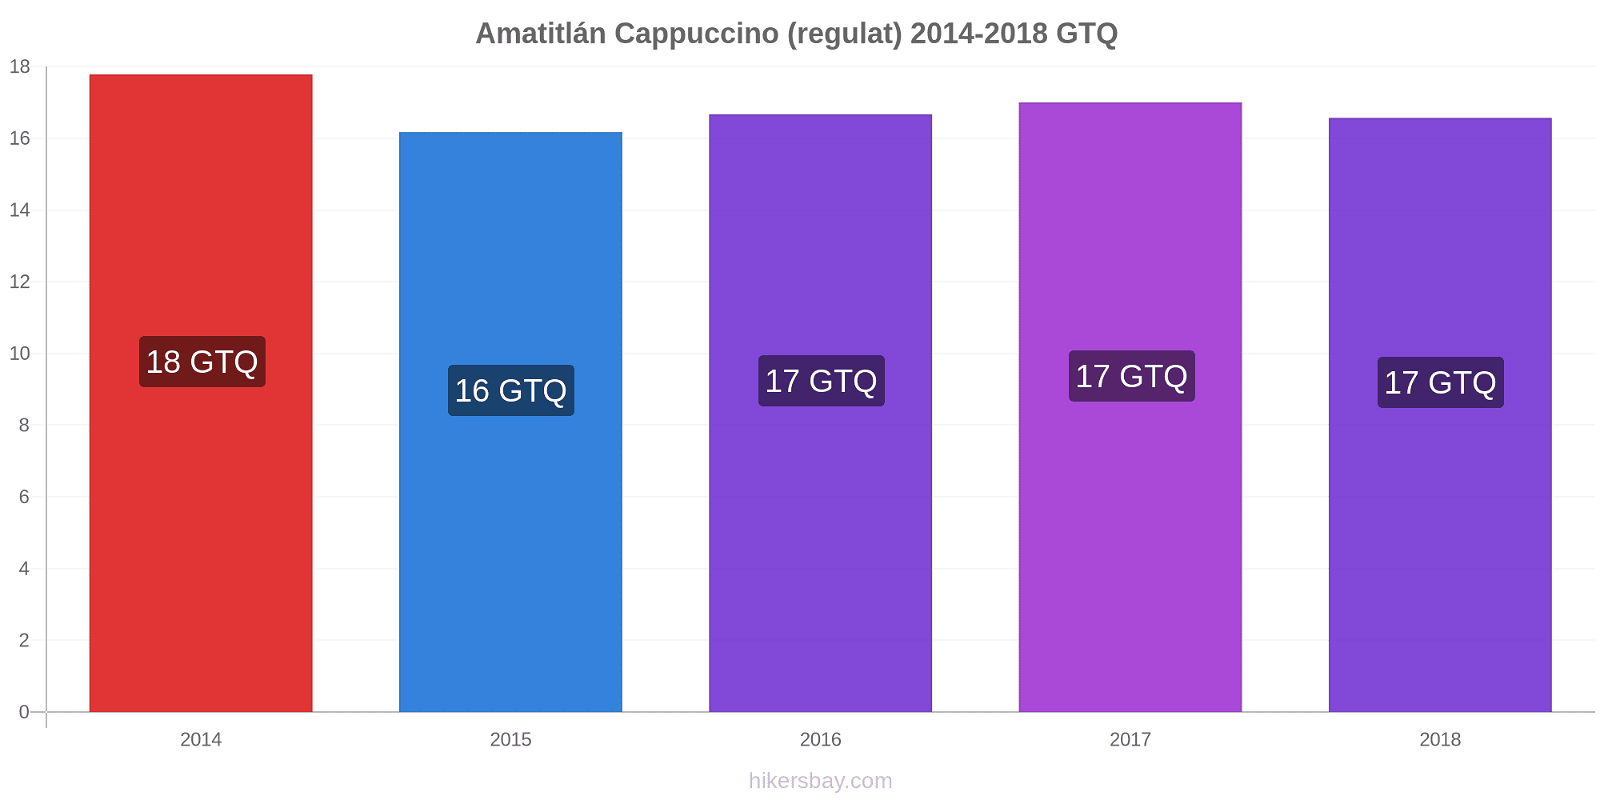 Amatitlán modificări de preț Cappuccino (regulat) hikersbay.com